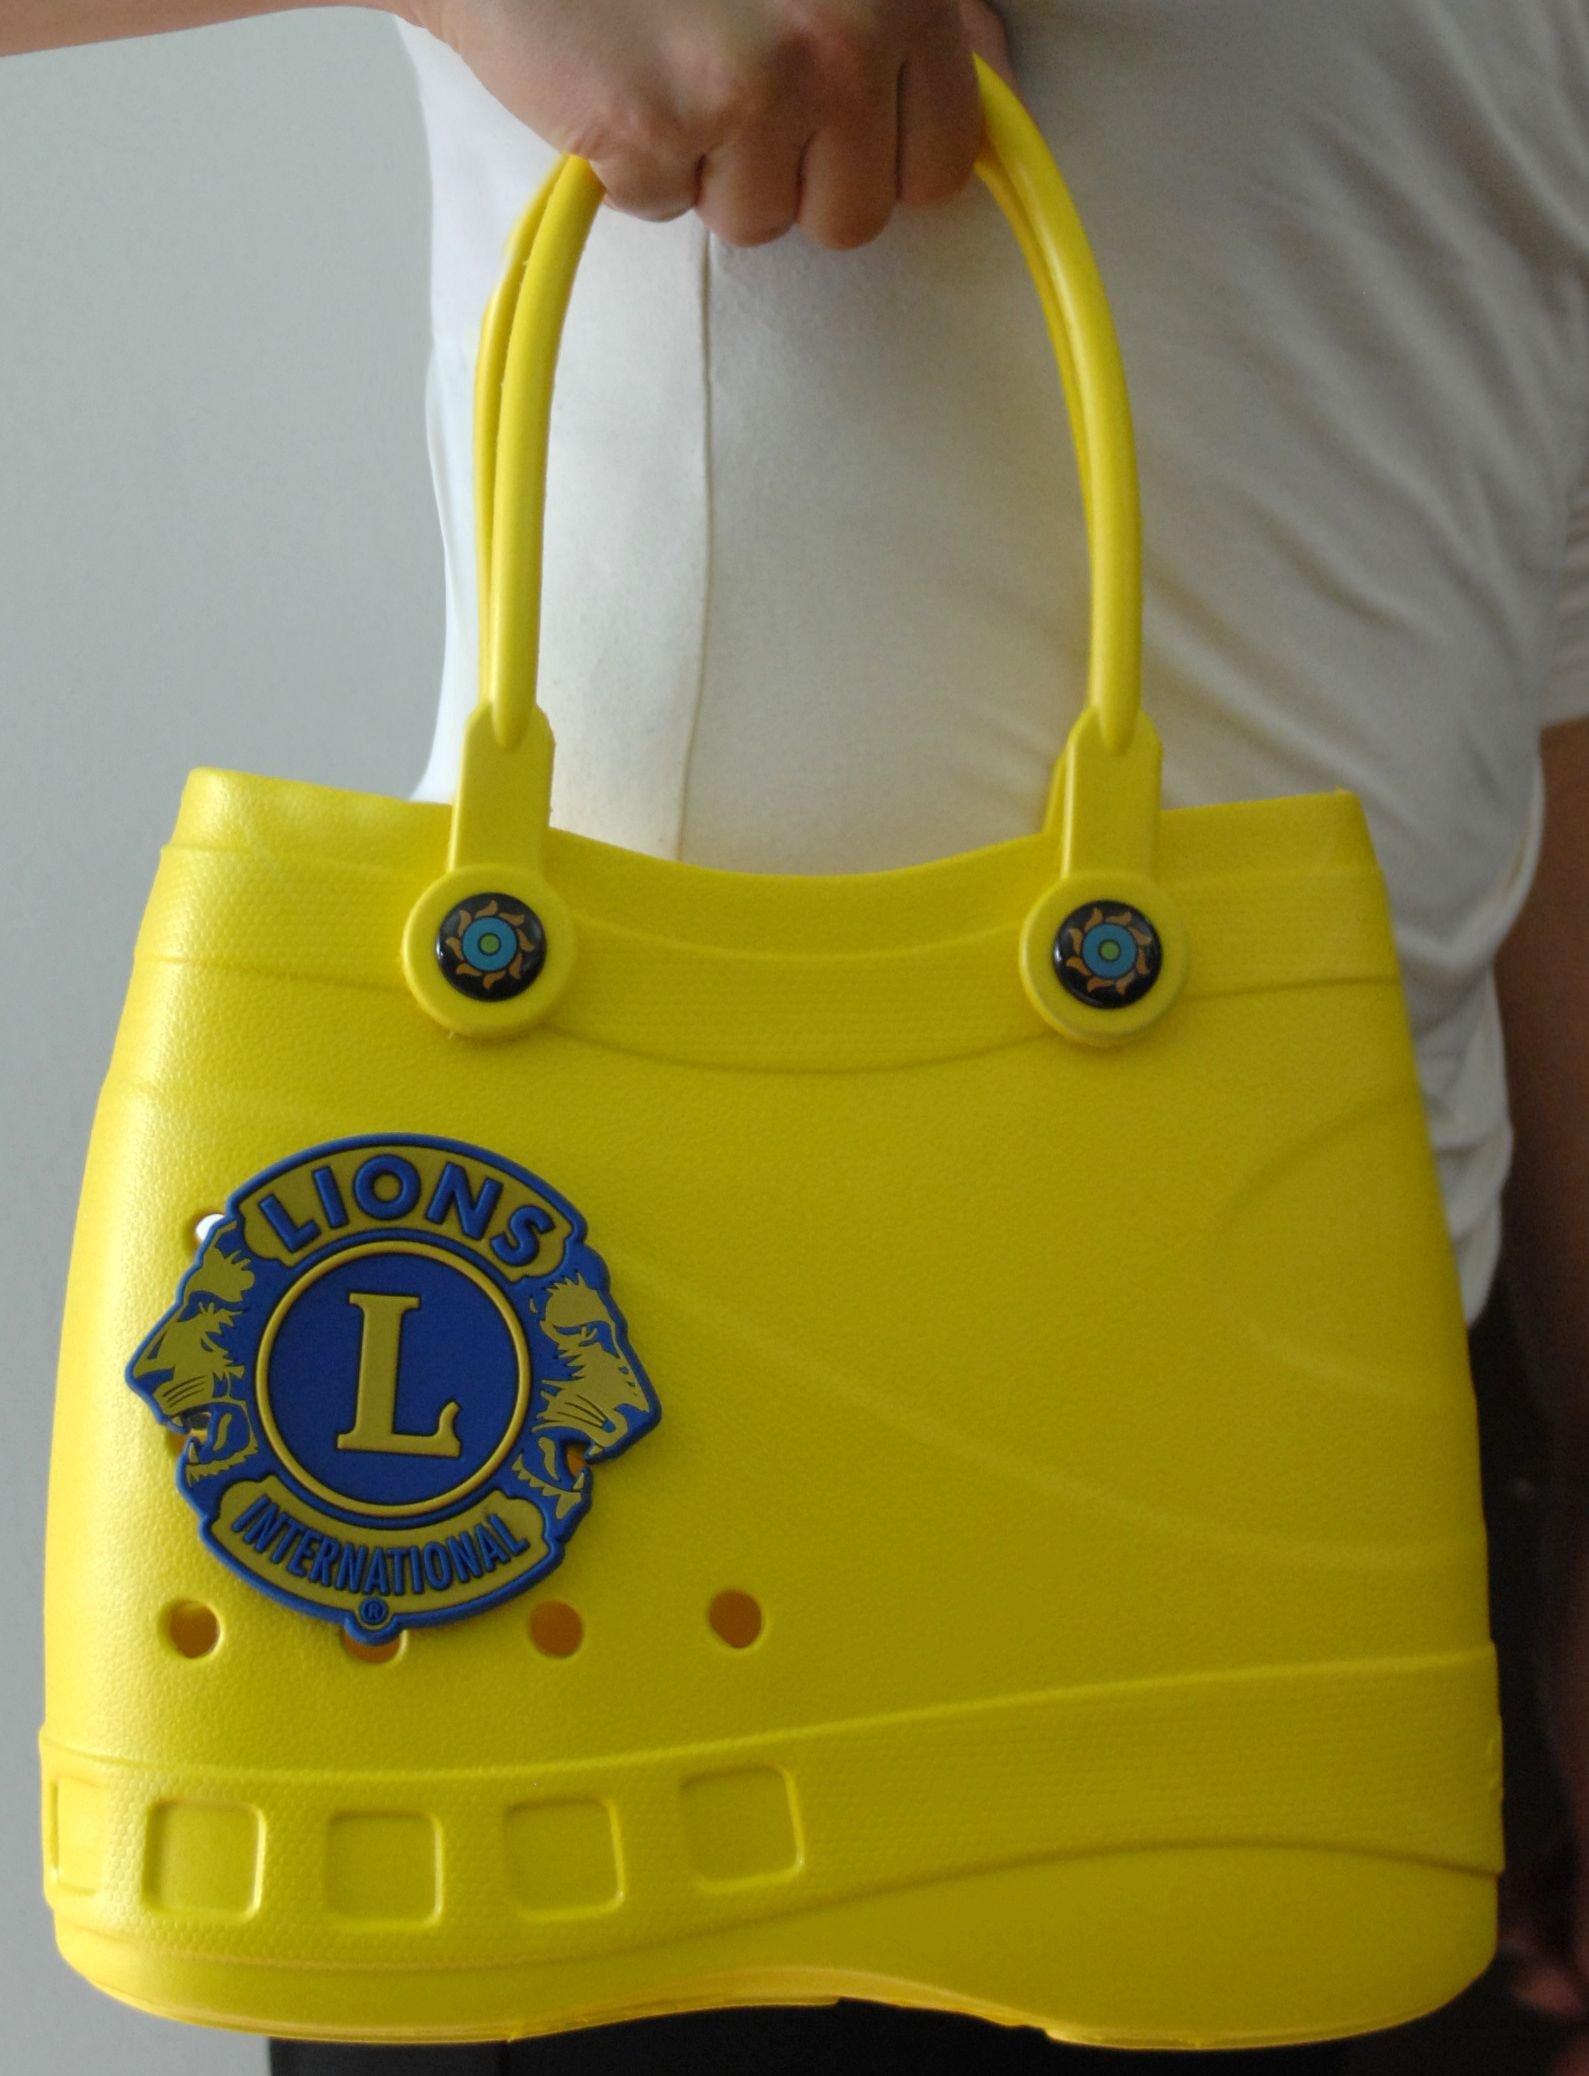 Small Sol Tote Bag 19 60 Https Www2 Lionsclubs Org P 556 Sol Tote Bag Small Aspx Tote Bag Bags Tote [ 2076 x 1589 Pixel ]